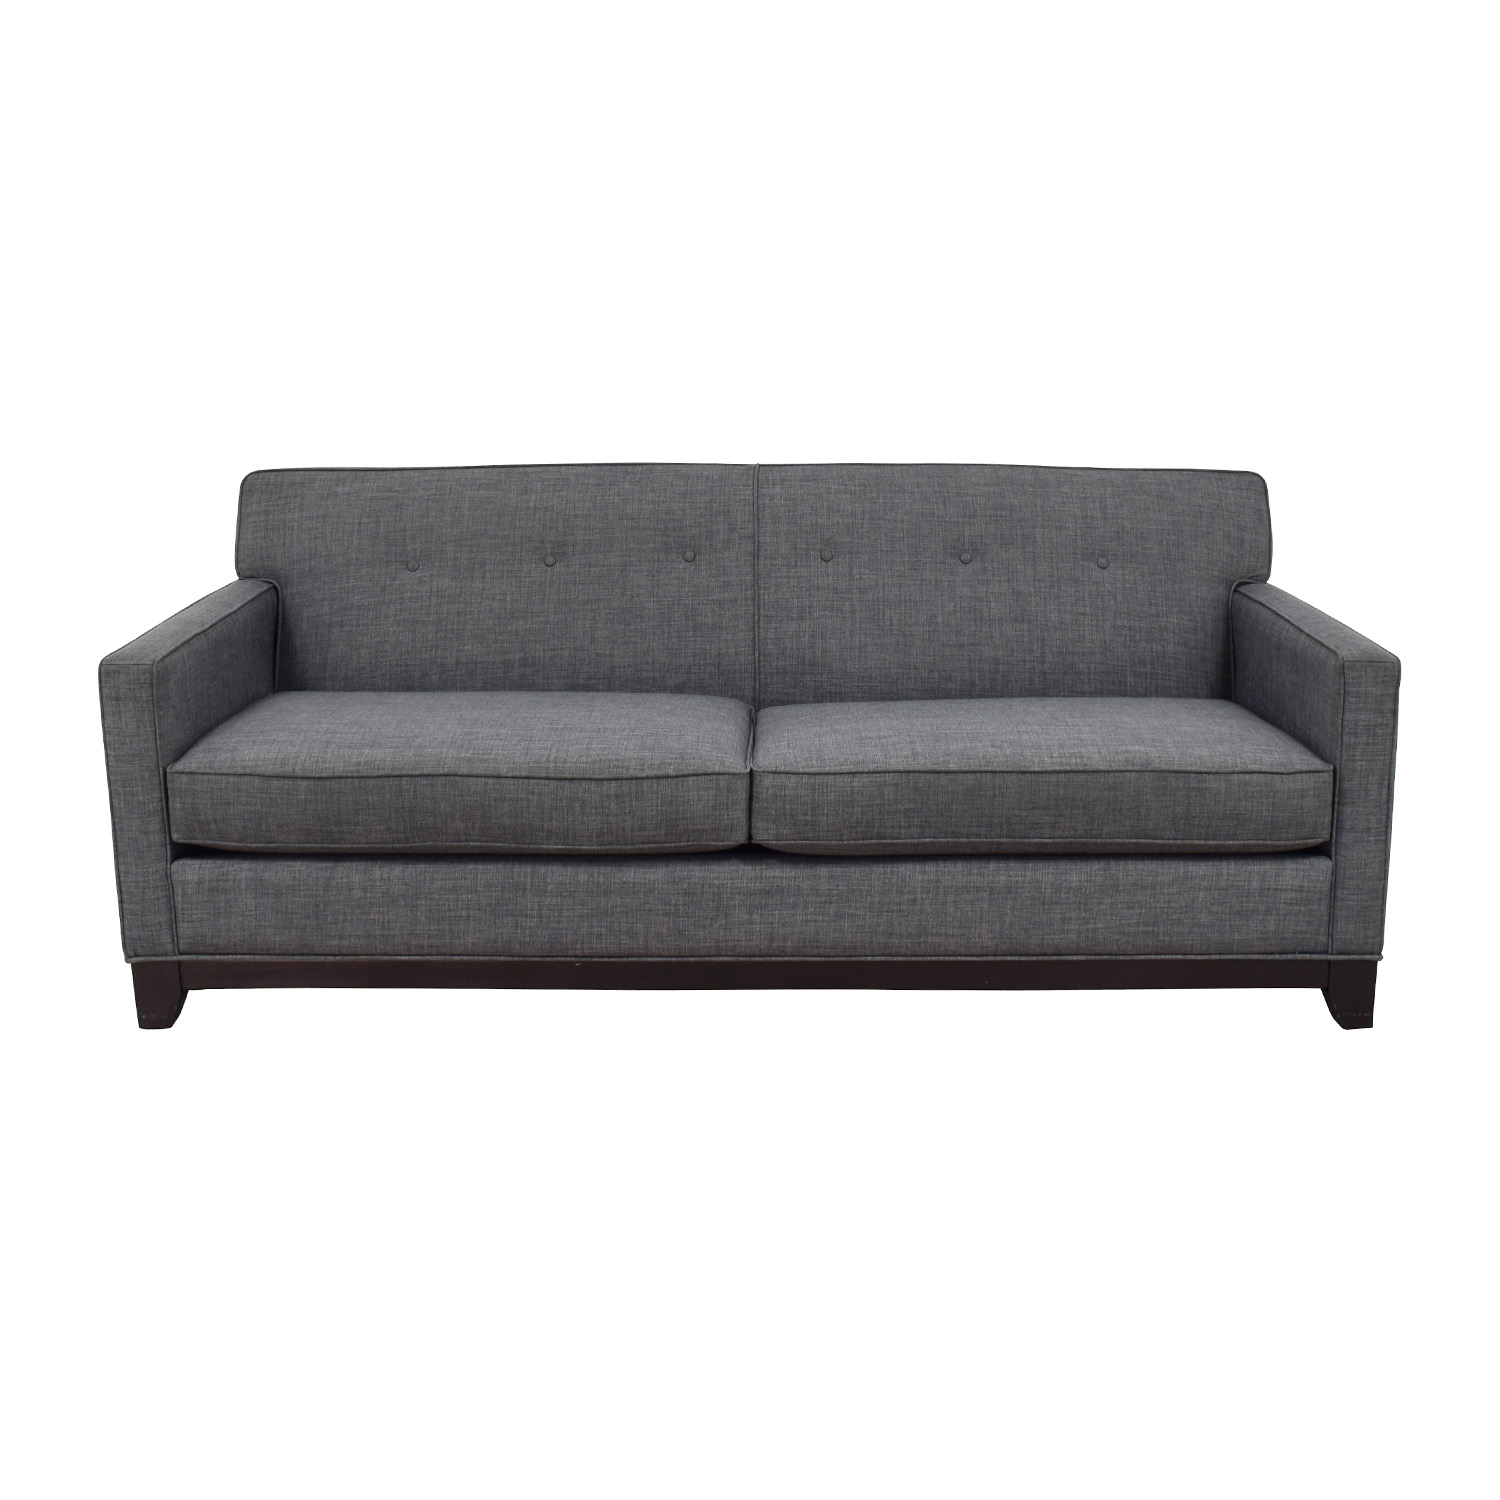 buy Raymour & Flanigan Chilson Grey Tufted Two-Cushion Sofa Raymour and Flanigan Classic Sofas